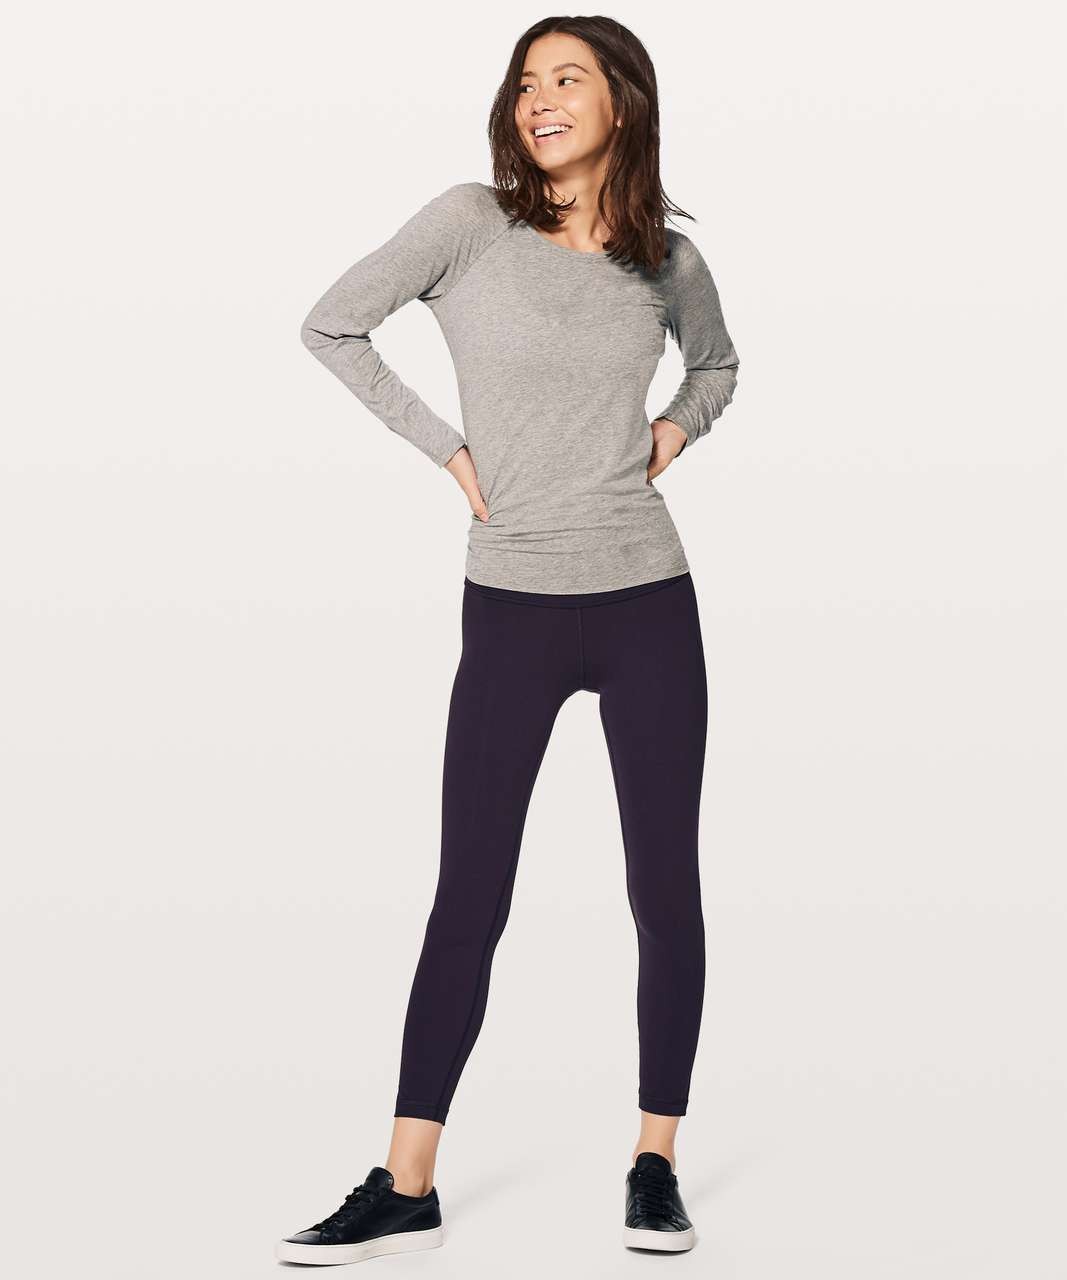 "Lululemon Wunder Under Hi-Rise 7/8 Tight 25"" - Boysenberry"